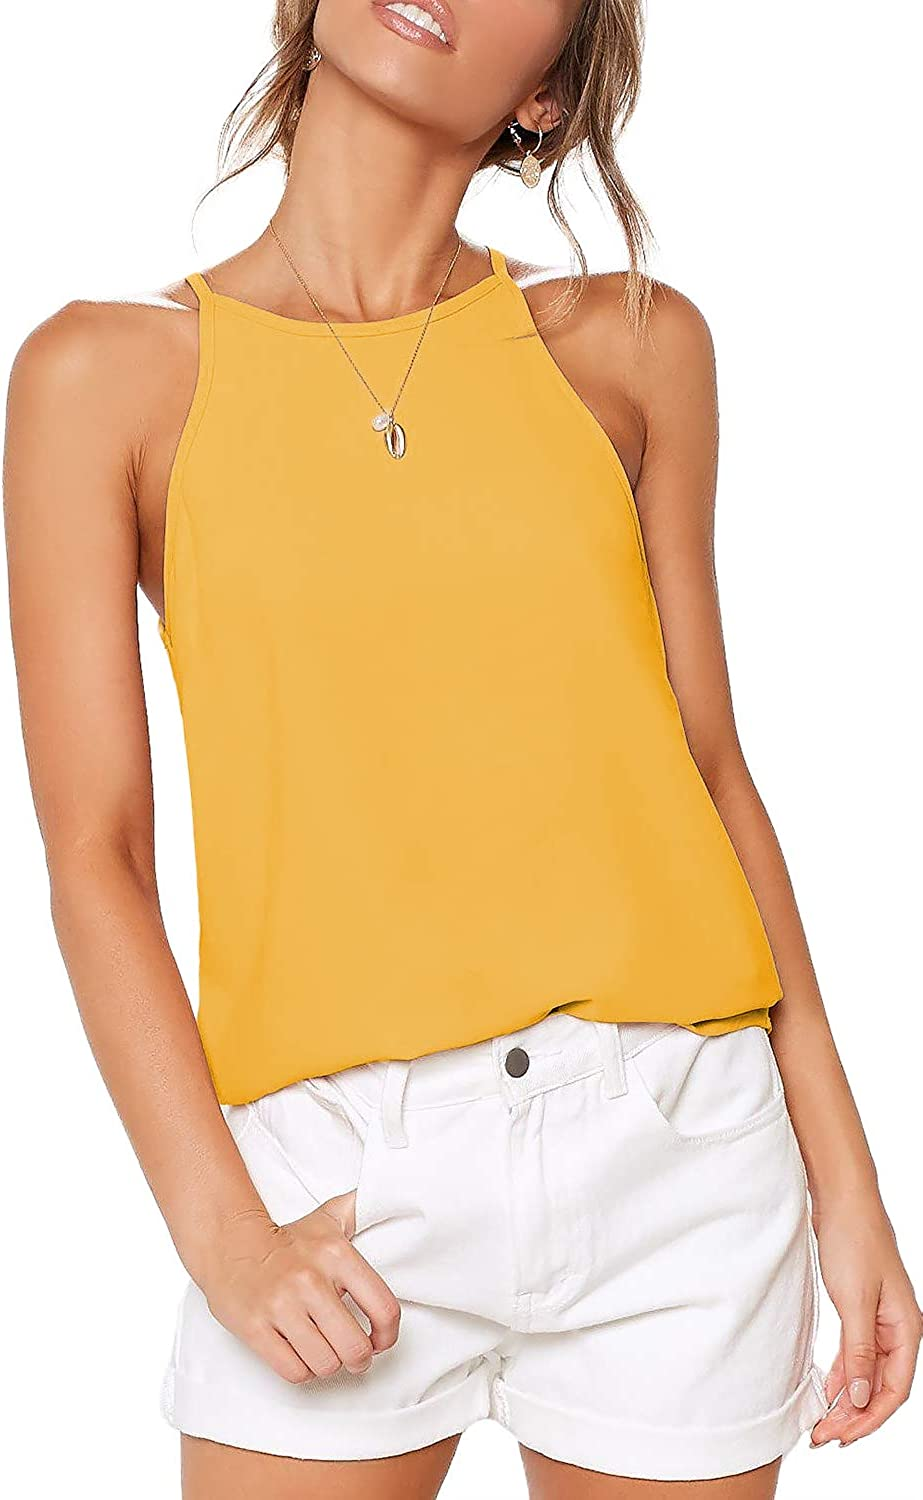 ZJCTUO Womens Tops Halterneck Racerback Summer Casual Basic Sleeveless Tee Shirts Cami Tank Tops Beach Vests Blouses